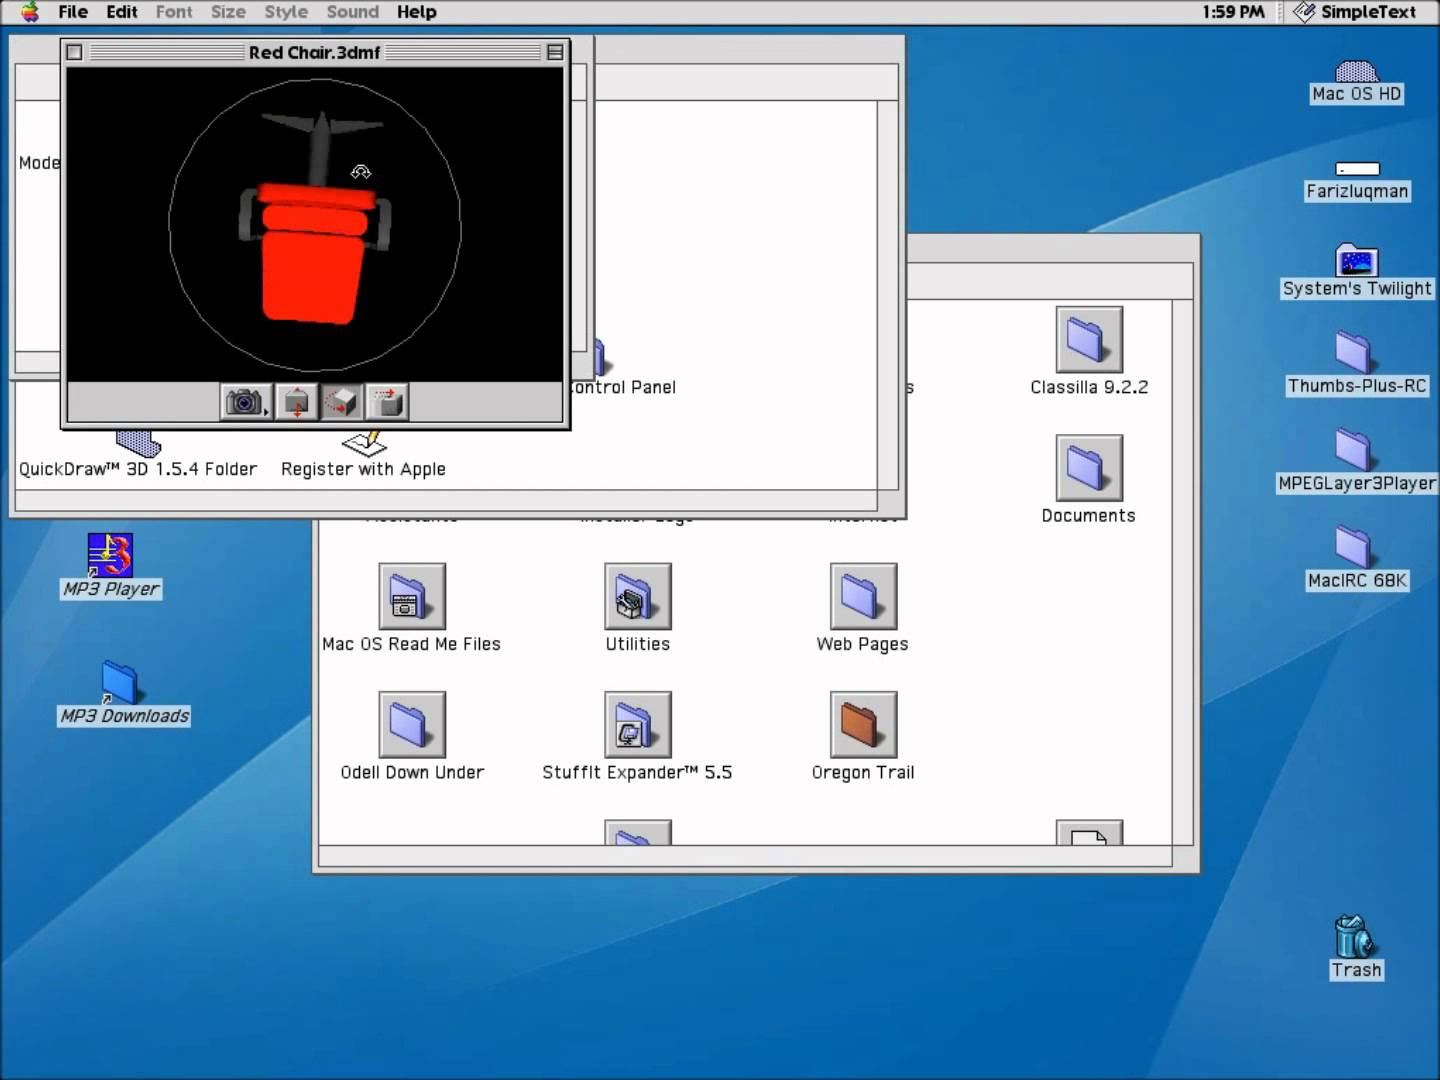 Ancient Mac OS 8 6 - Mac Heat